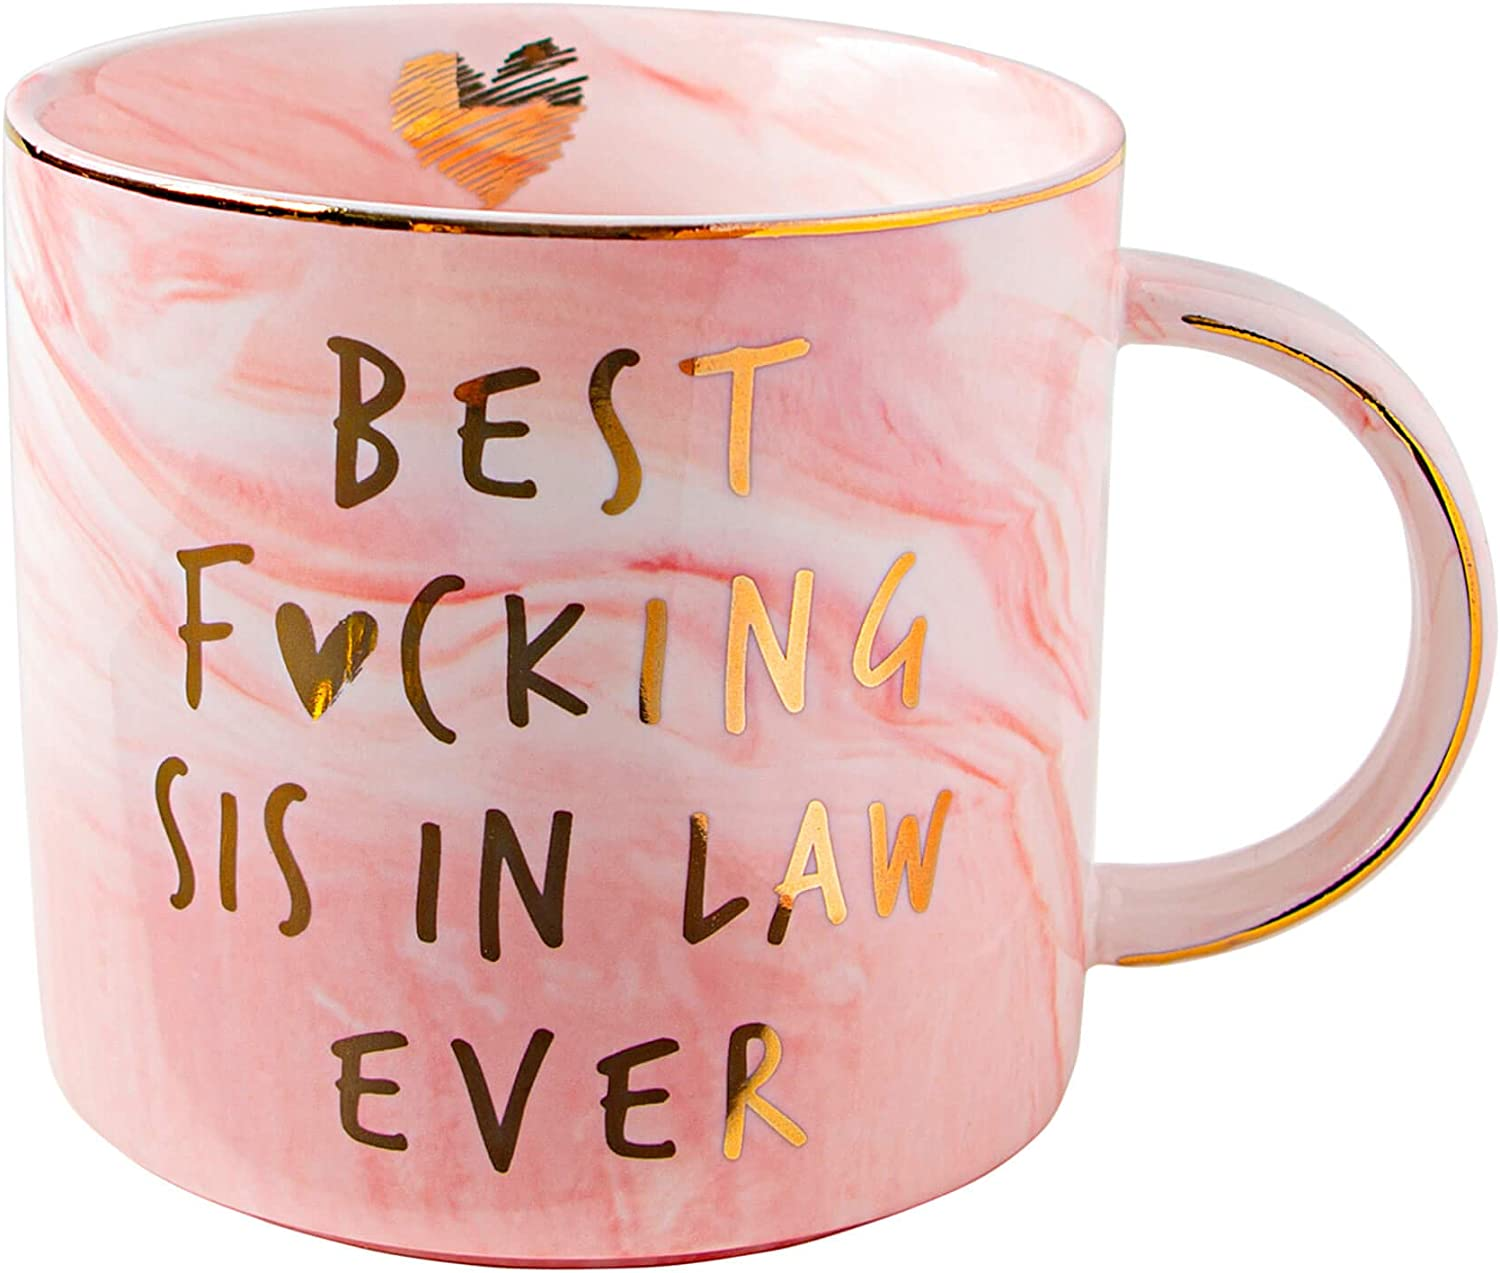 Vilight Best Sister in Law Ever Funny Gifts Mug - Pink Marble Ceramic Coffee Cup 11.5 Oz